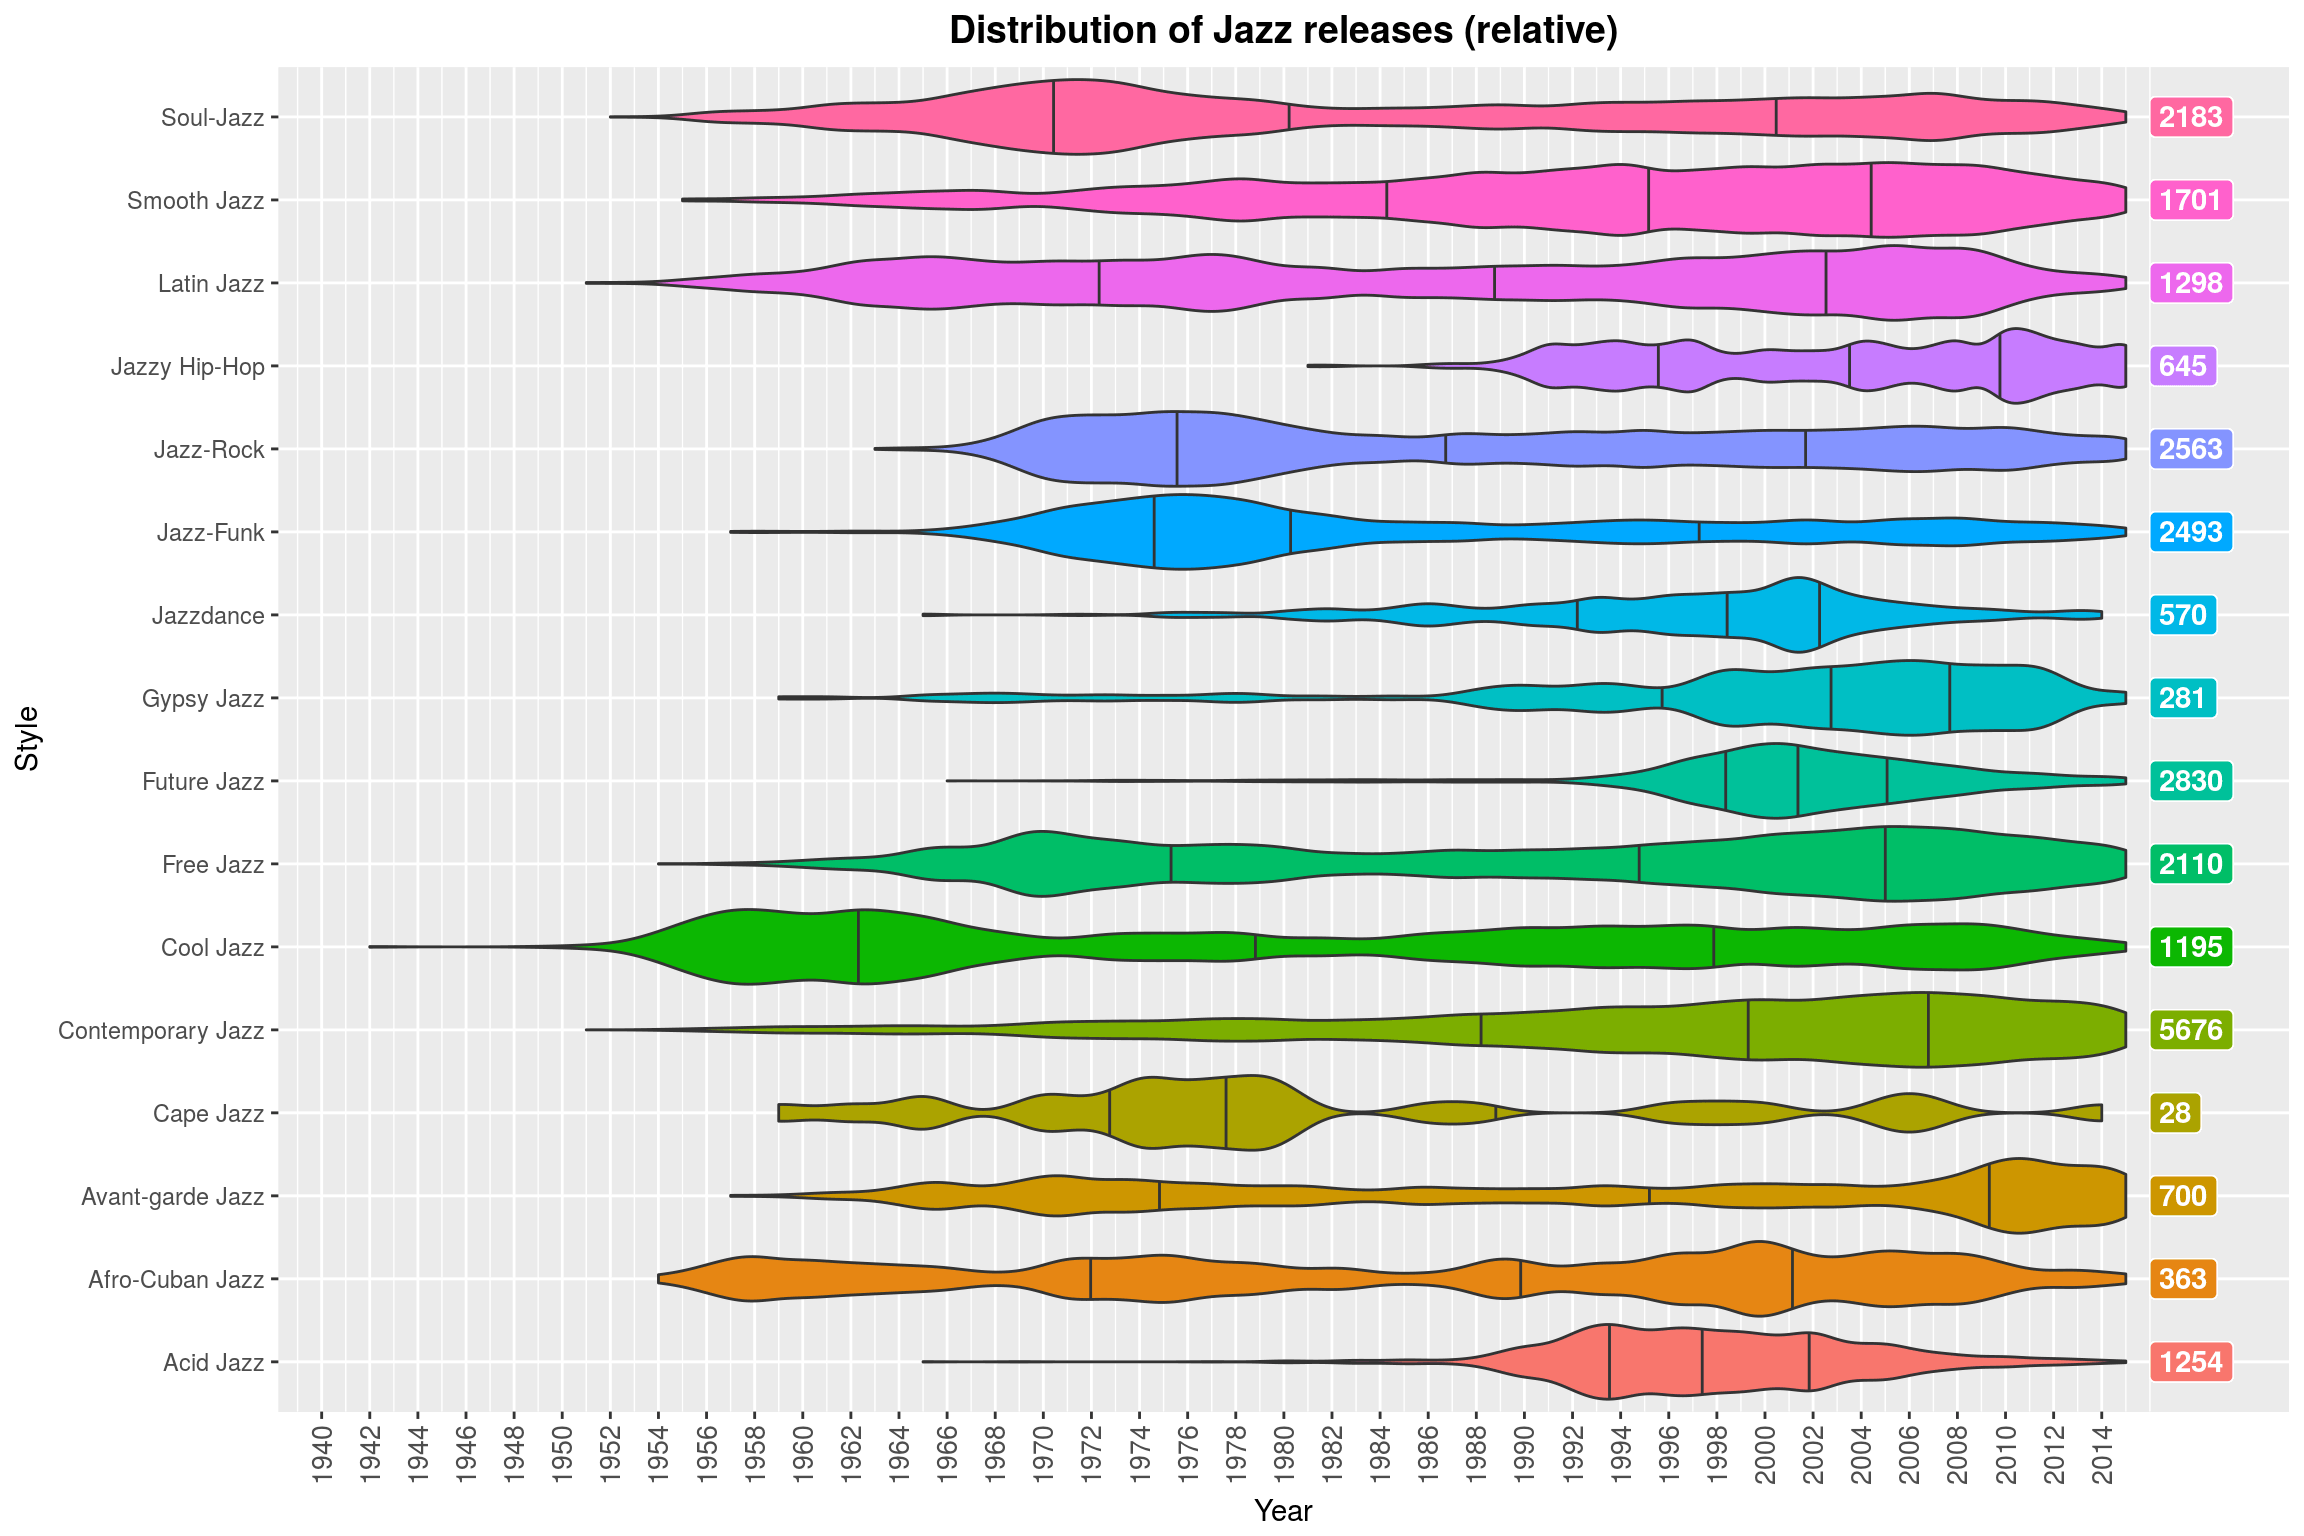 Distribution of Jazz releases (relative)